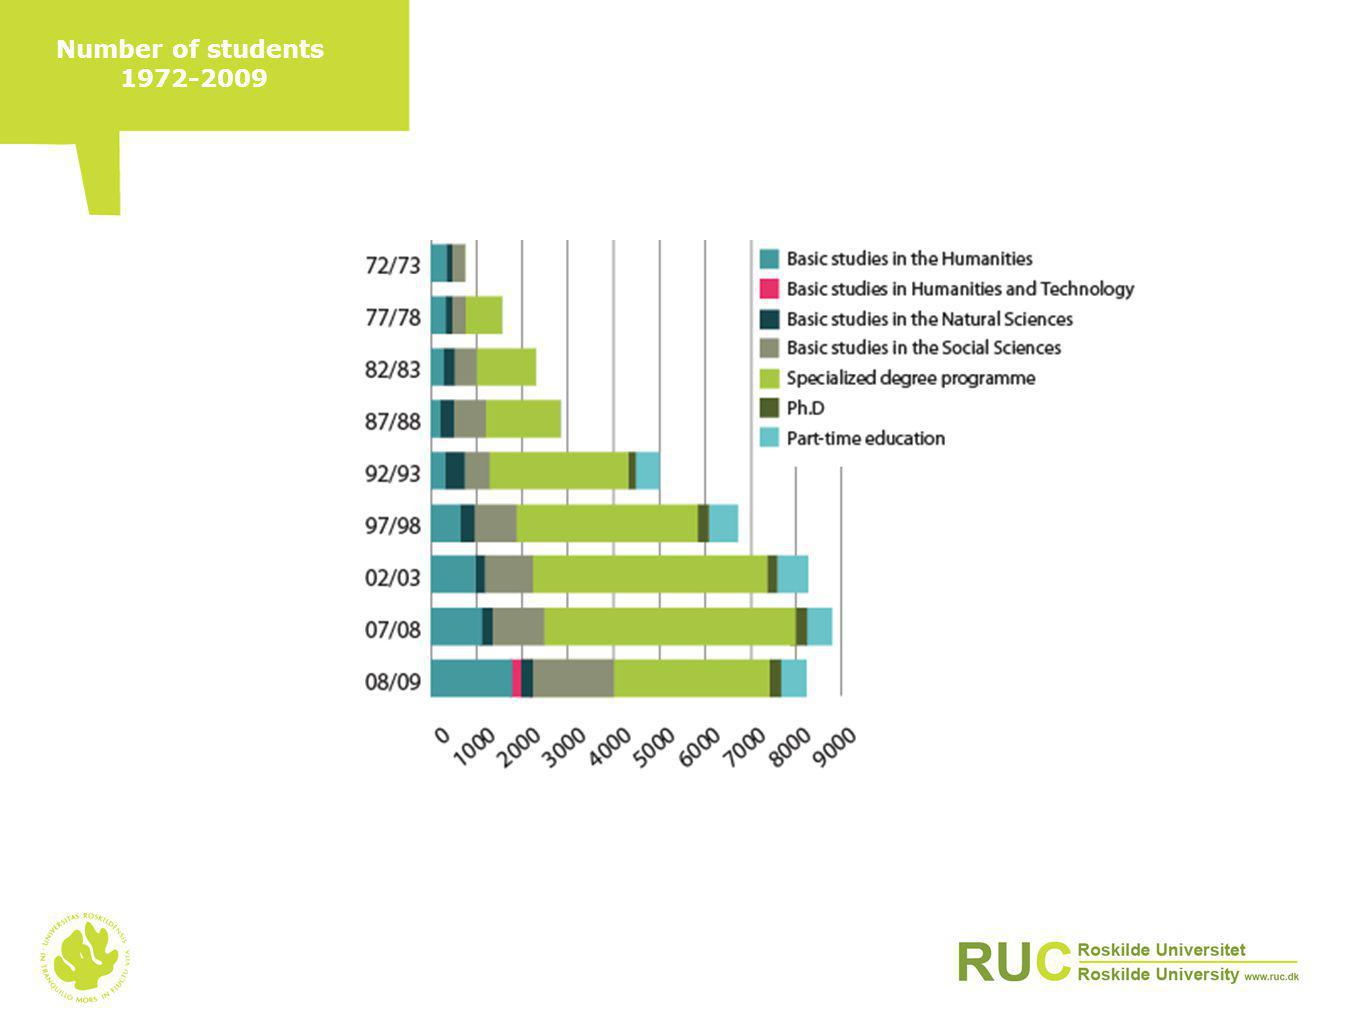 Number of students 1972-2009